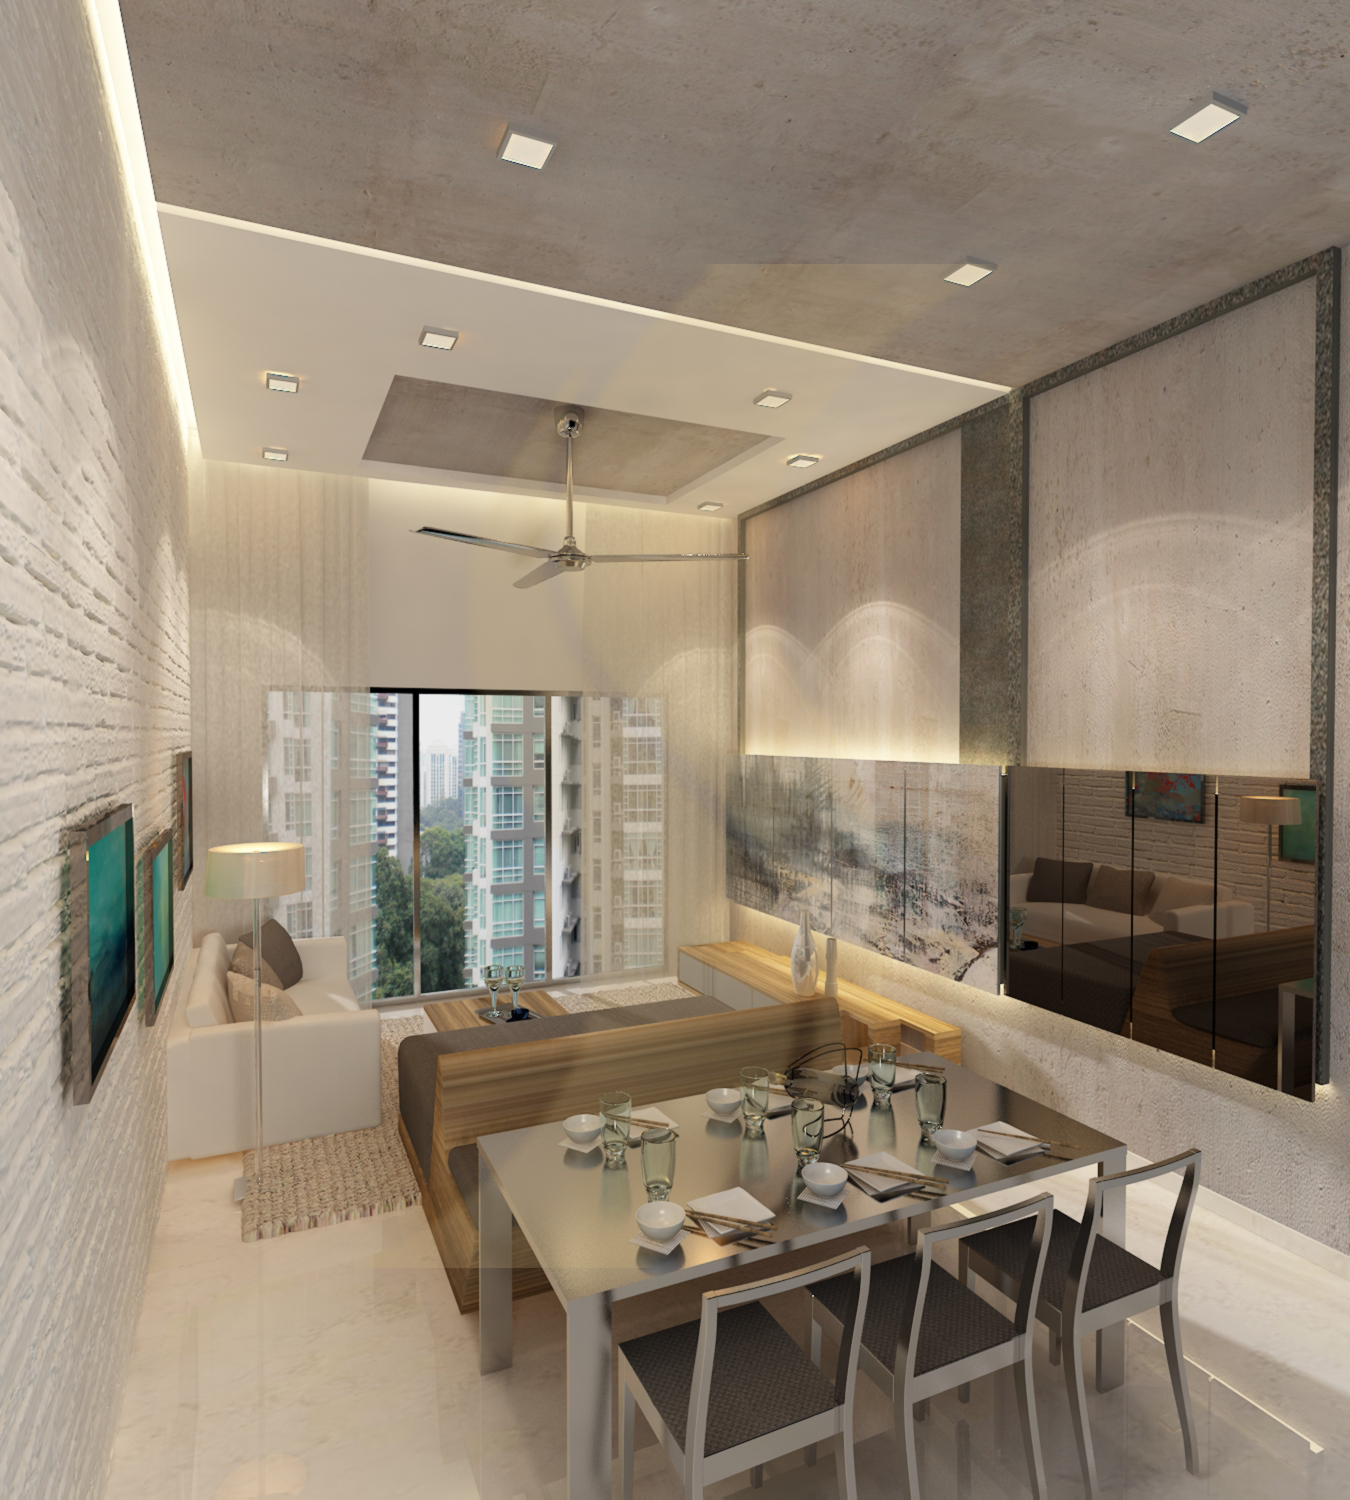 condominium ceiling designs room 4 interiors ForCondo Ceiling Design